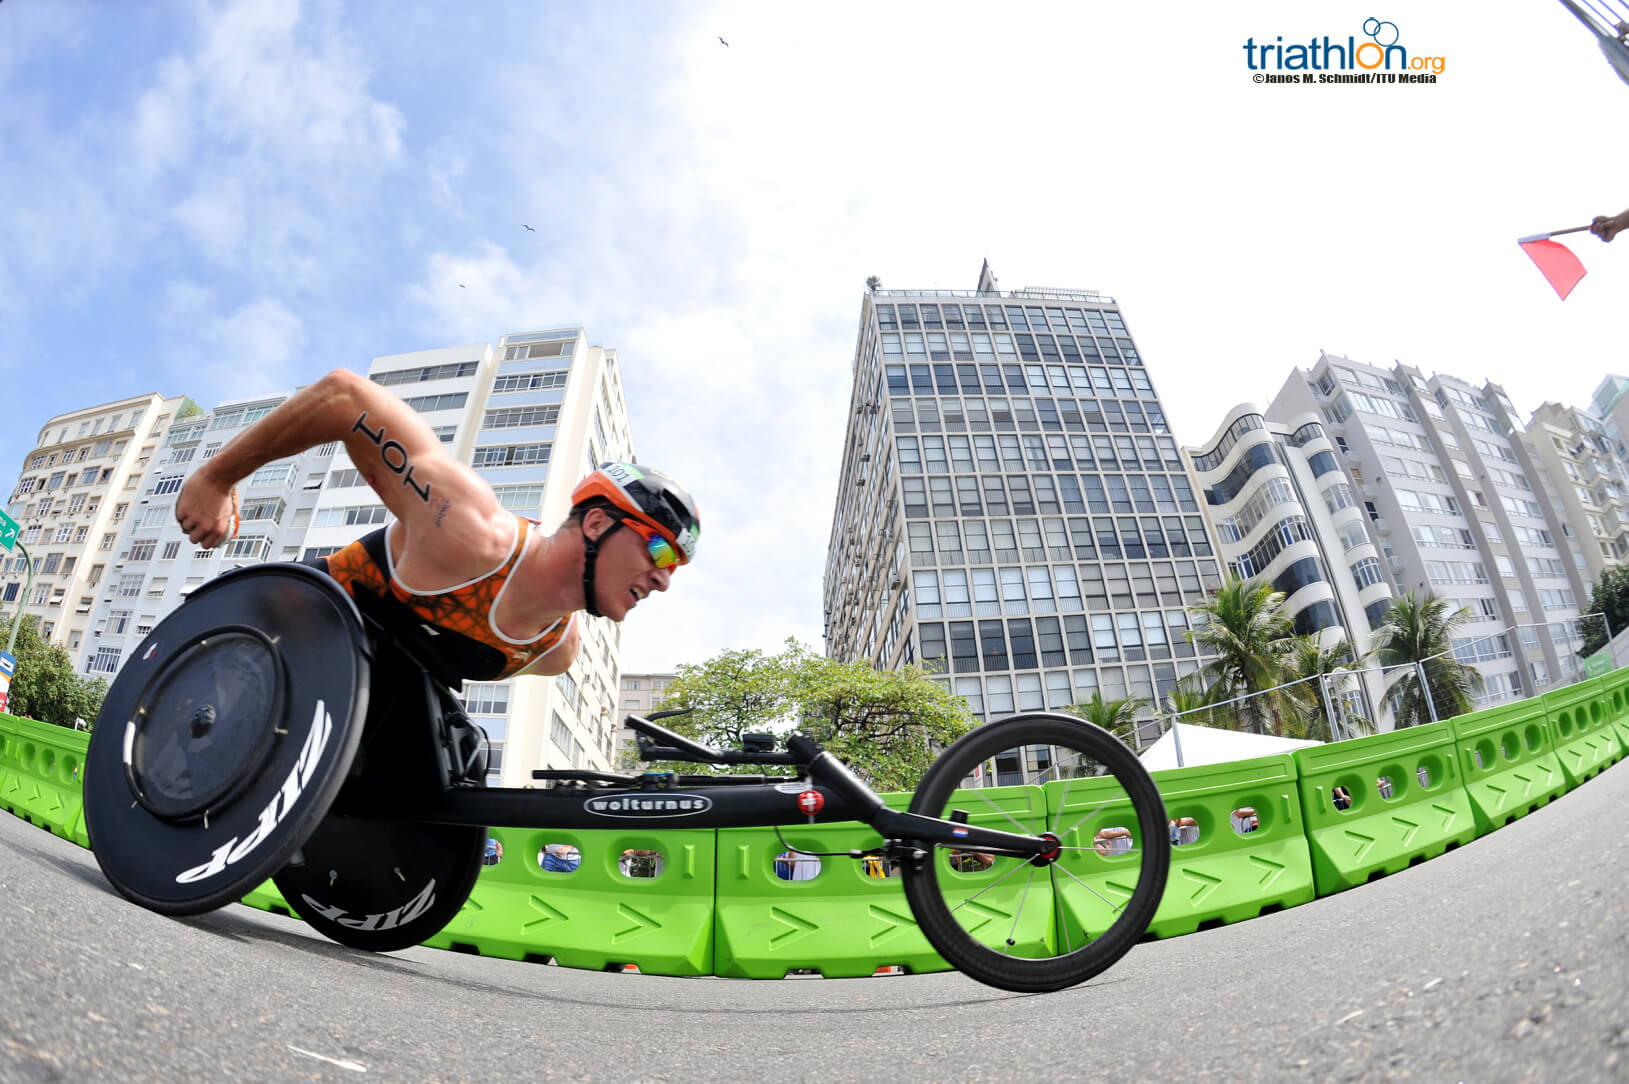 Plat cycling in rio